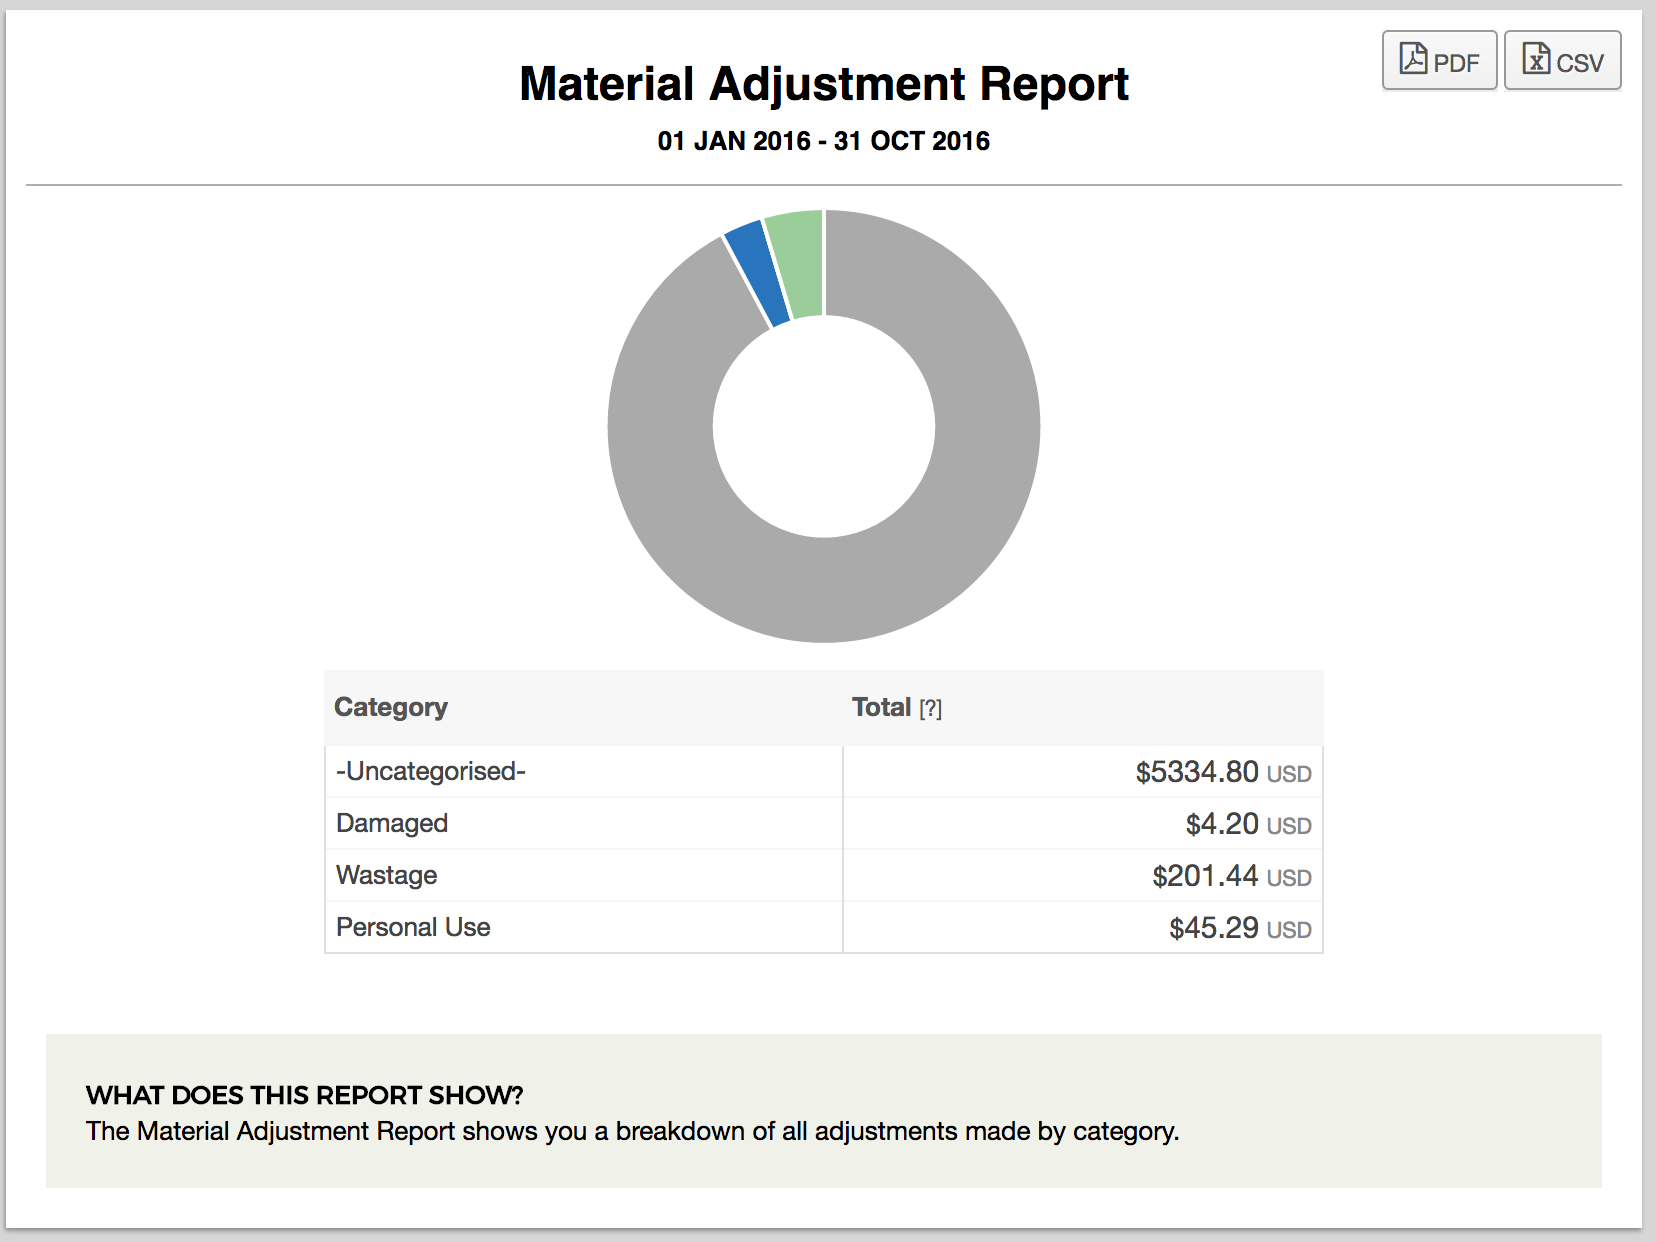 Material Inventory Adjustments including personal use for schedule c